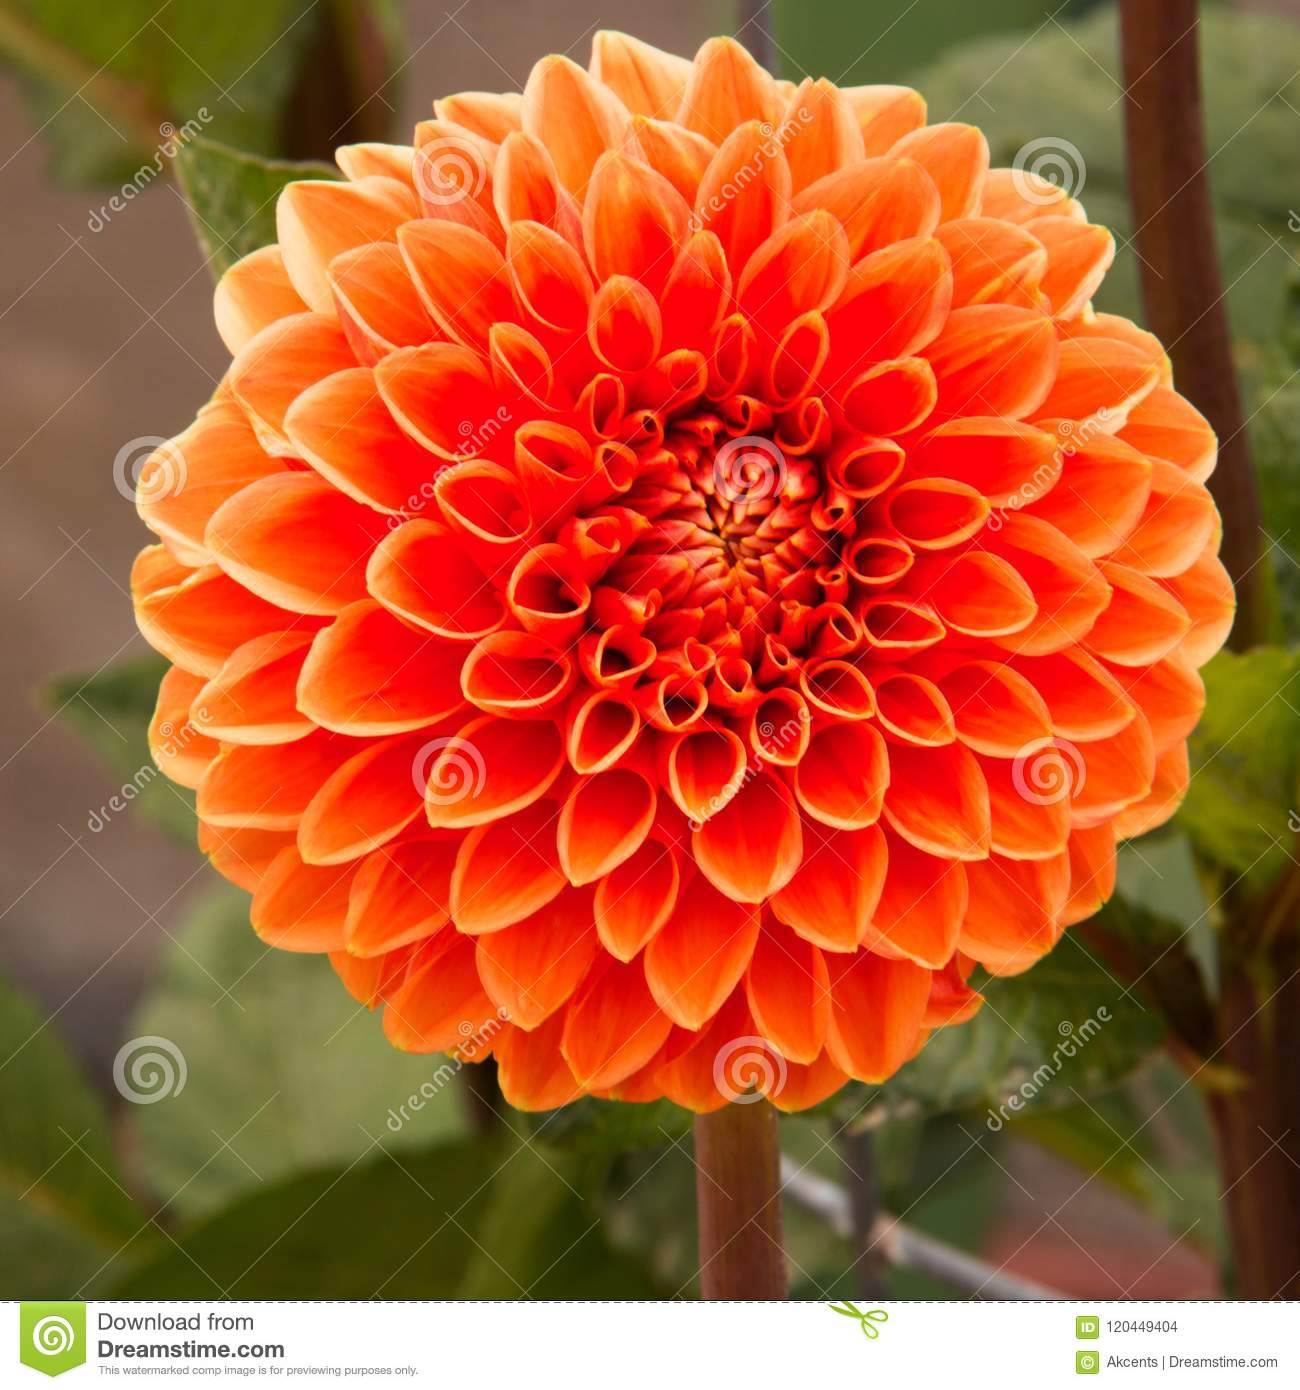 Bright orange blooming dahlia flower stock photo image of abstract colorful blooming orange dahlia flower close up in a flower garden izmirmasajfo